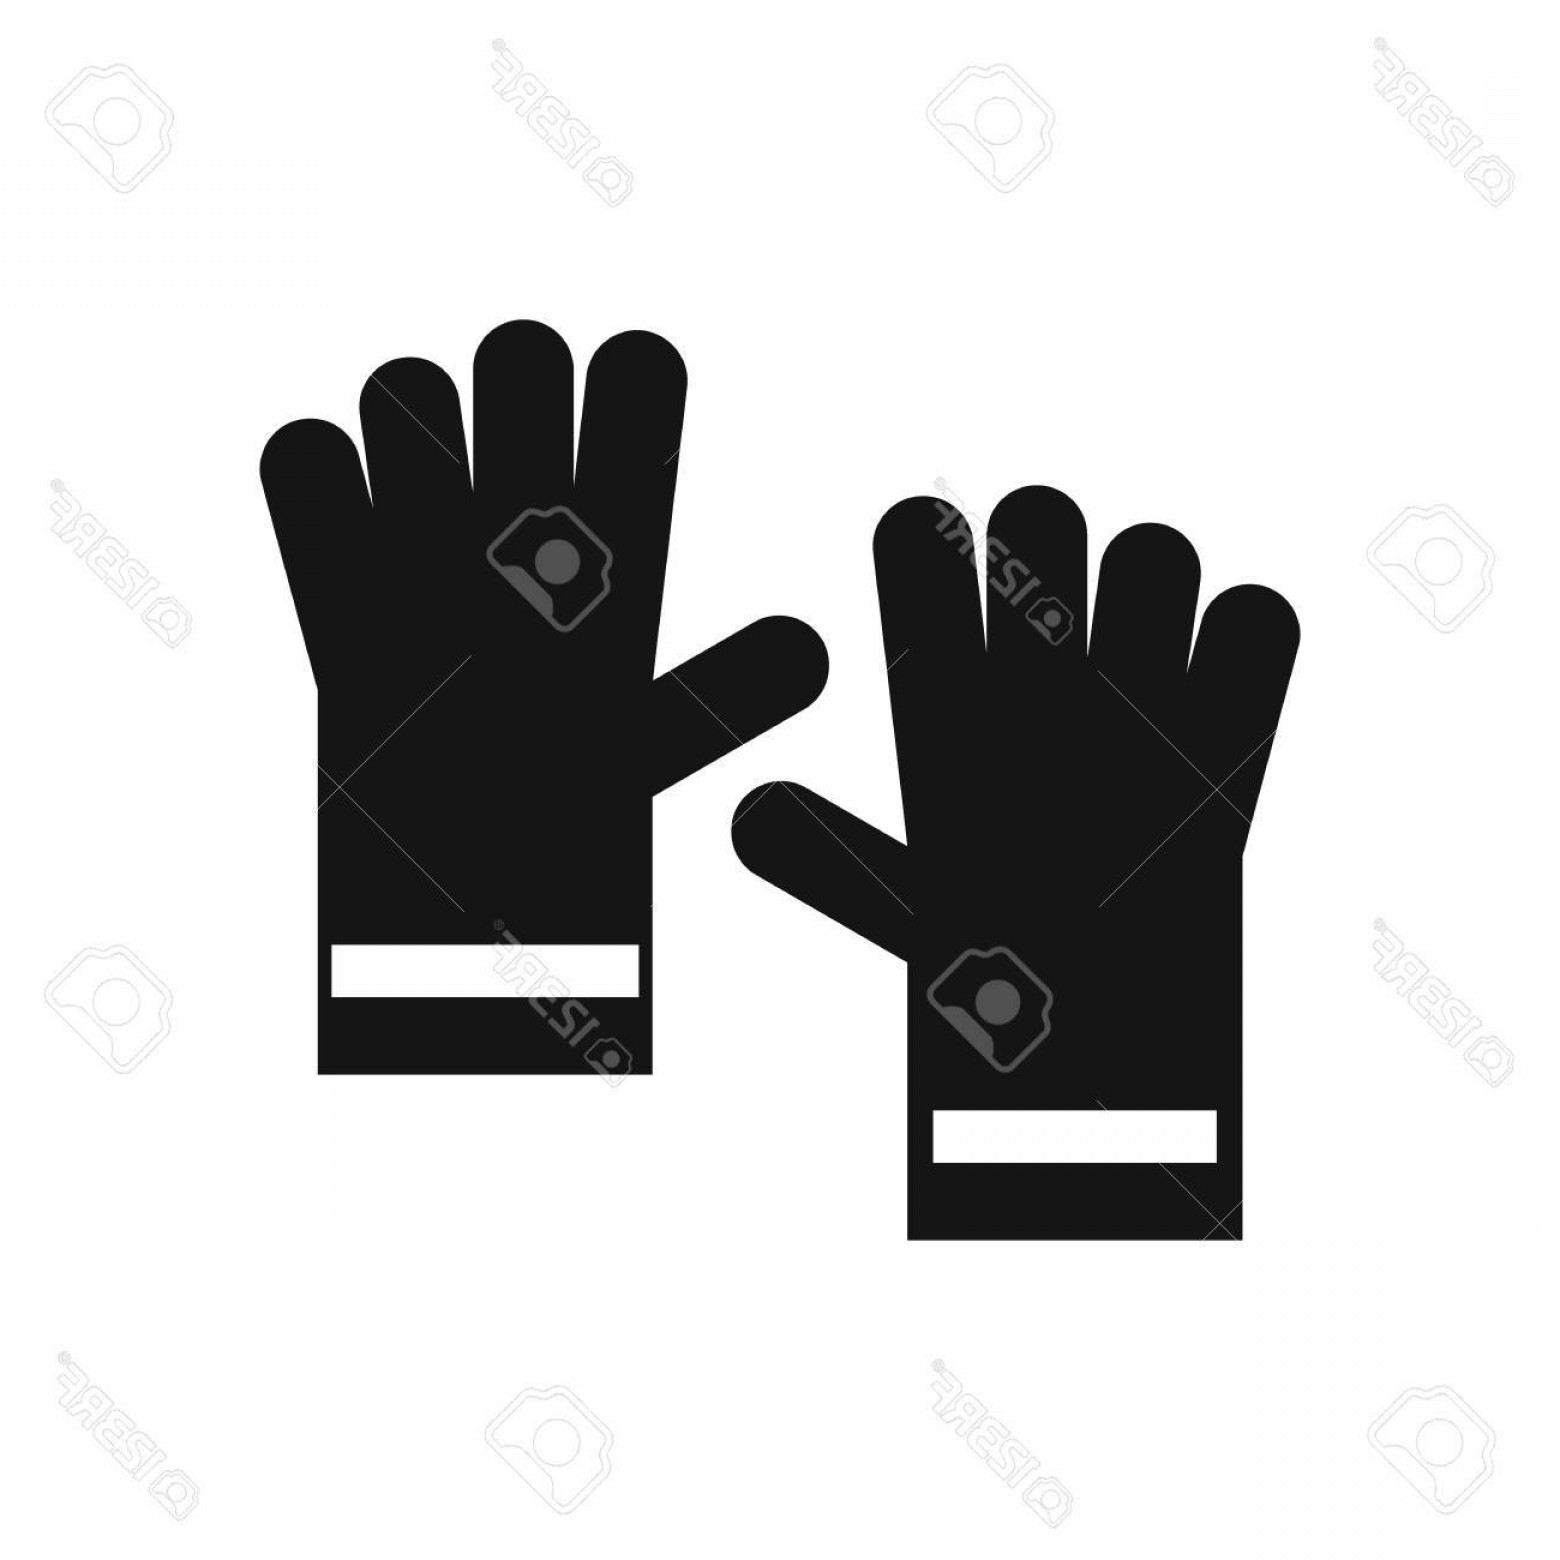 White Glove Service Vector: Photostock Vector Rubber Gloves Icon In Simple Style Isolated On White Background Hand Protection Symbol Vector Illust